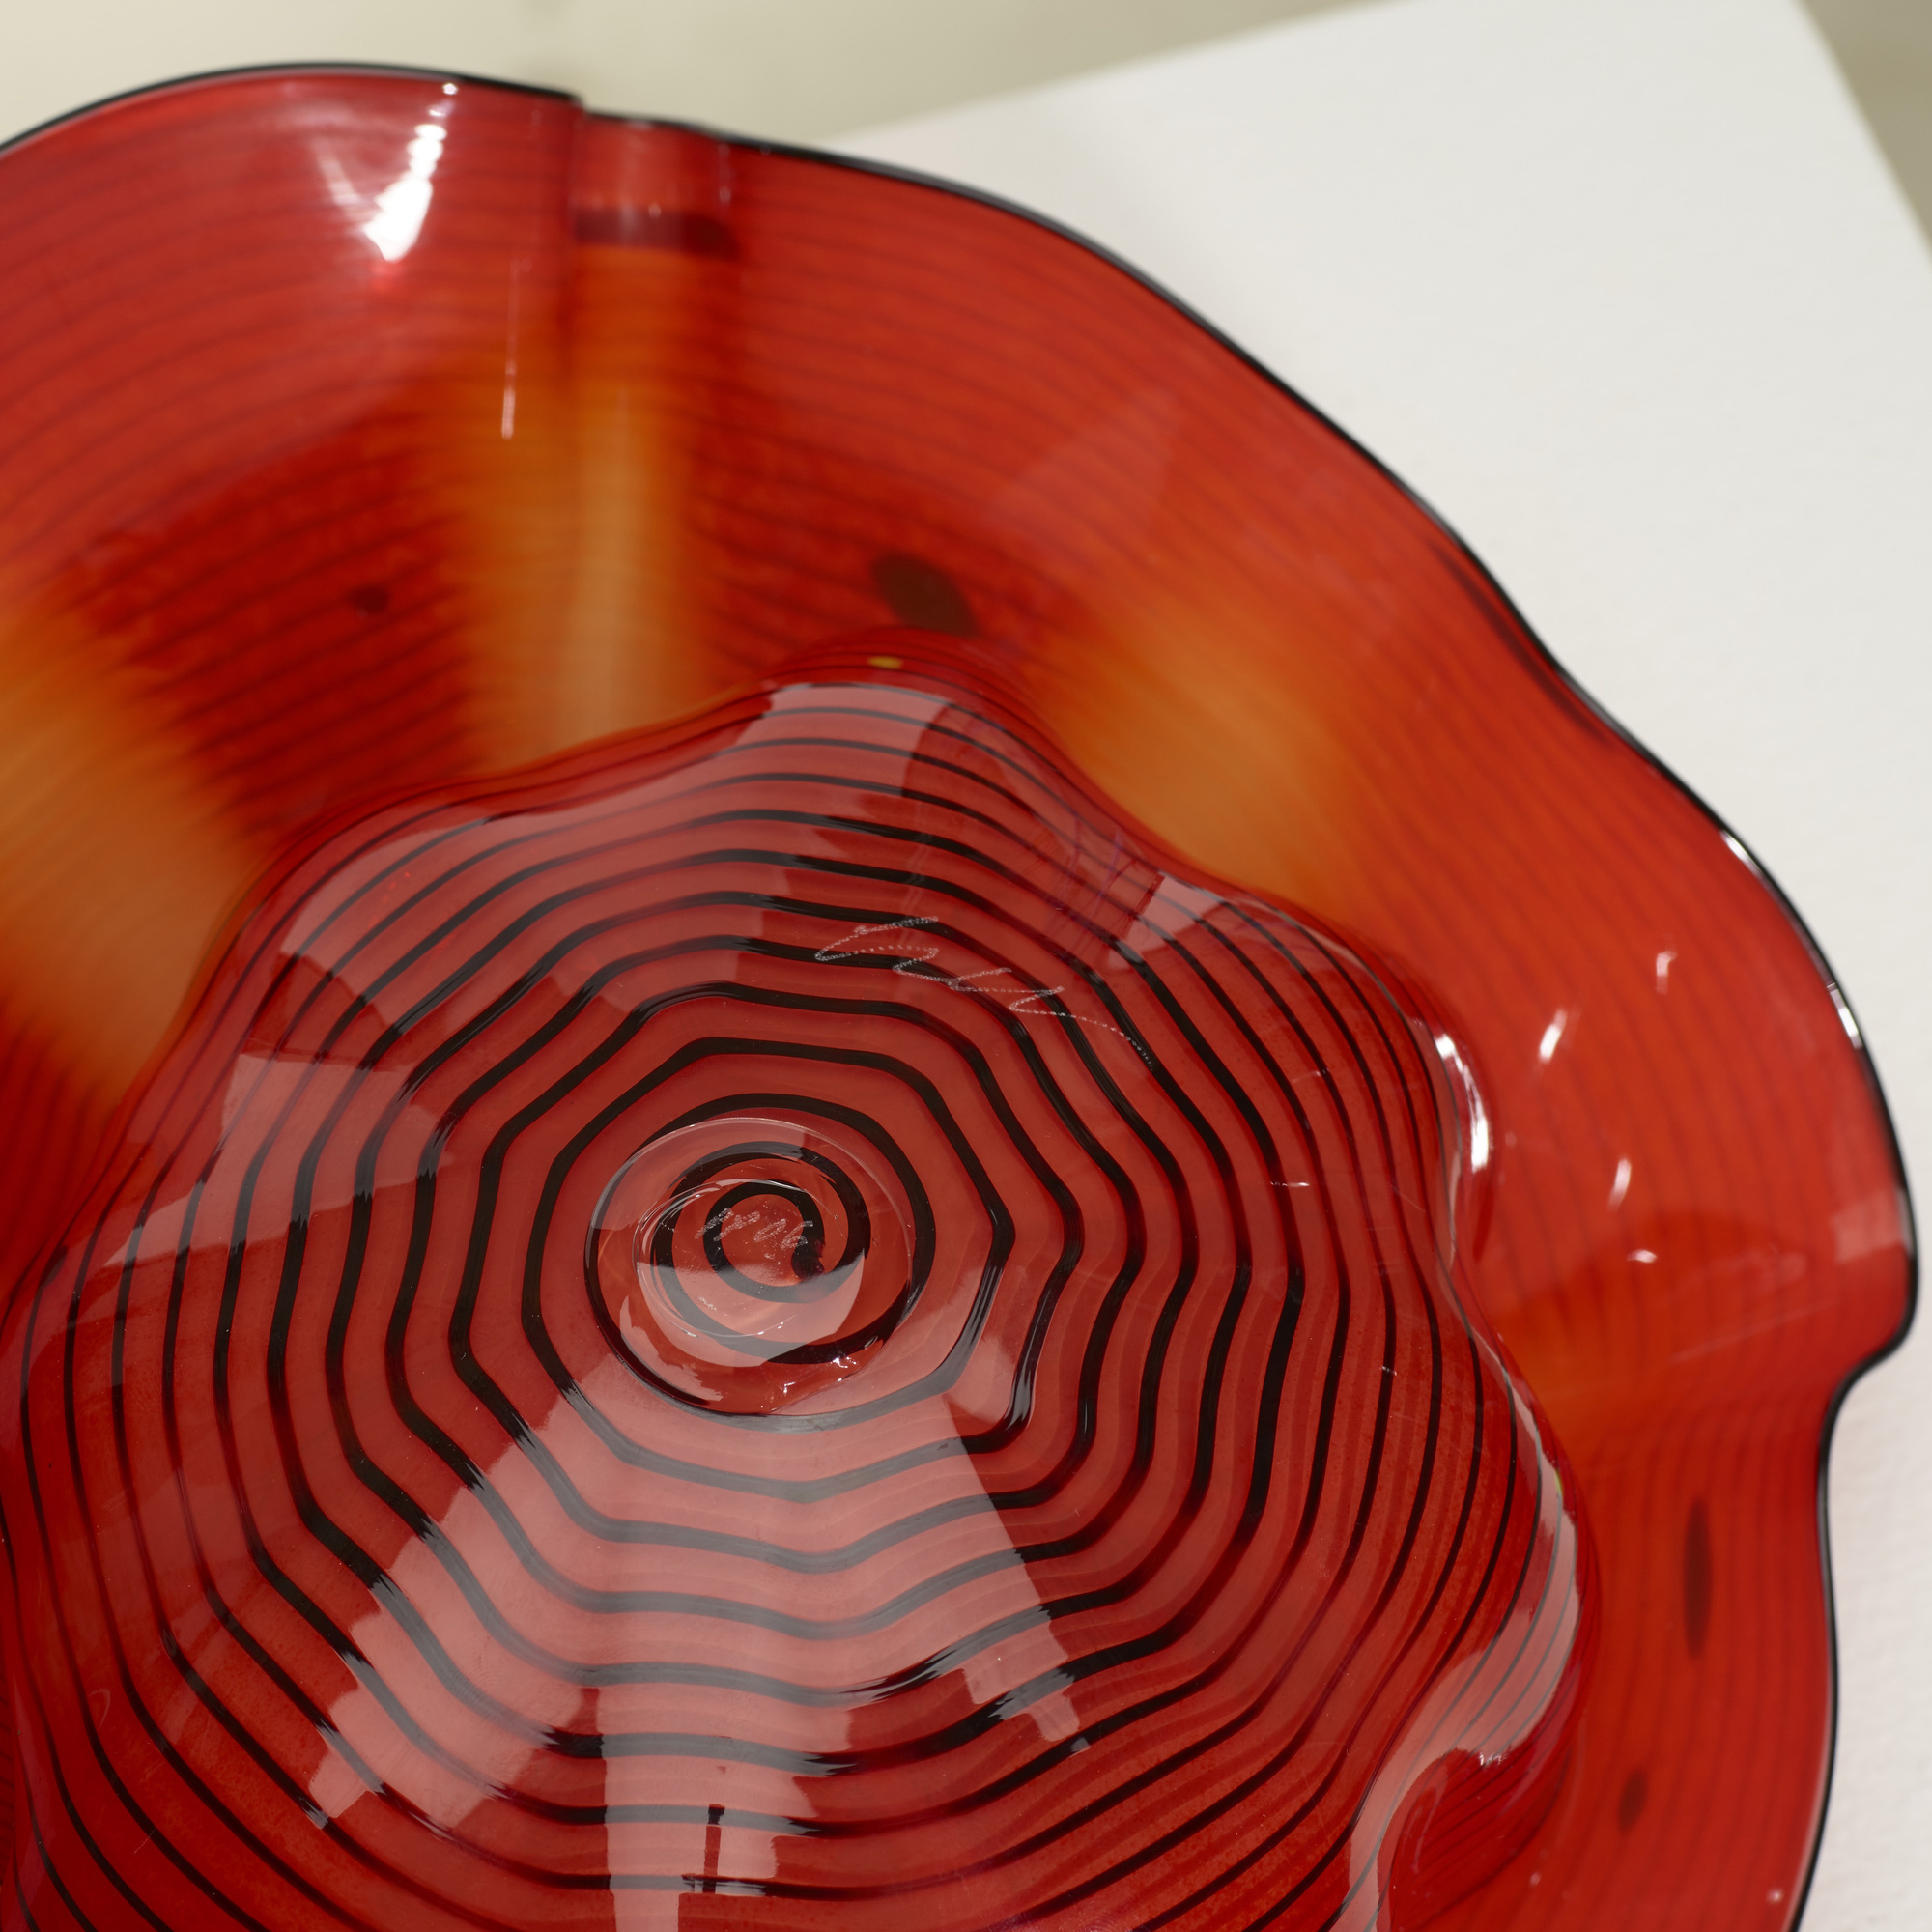 256: Dale Chihuly / Roman Red Seaform Set (4 of 4)